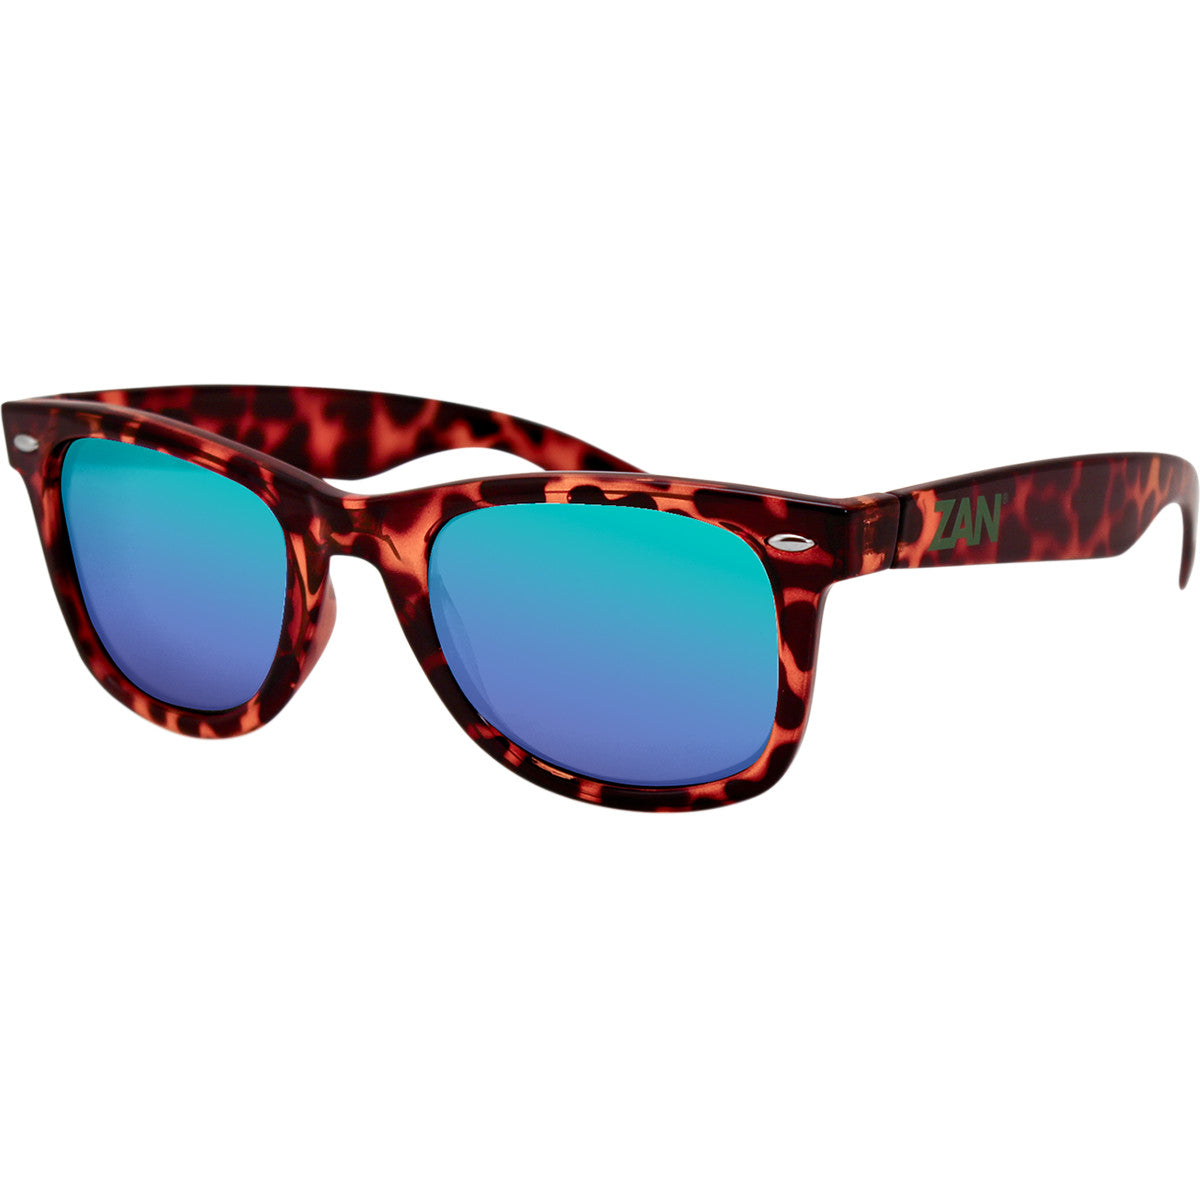 Zan Headgear Sunglasses